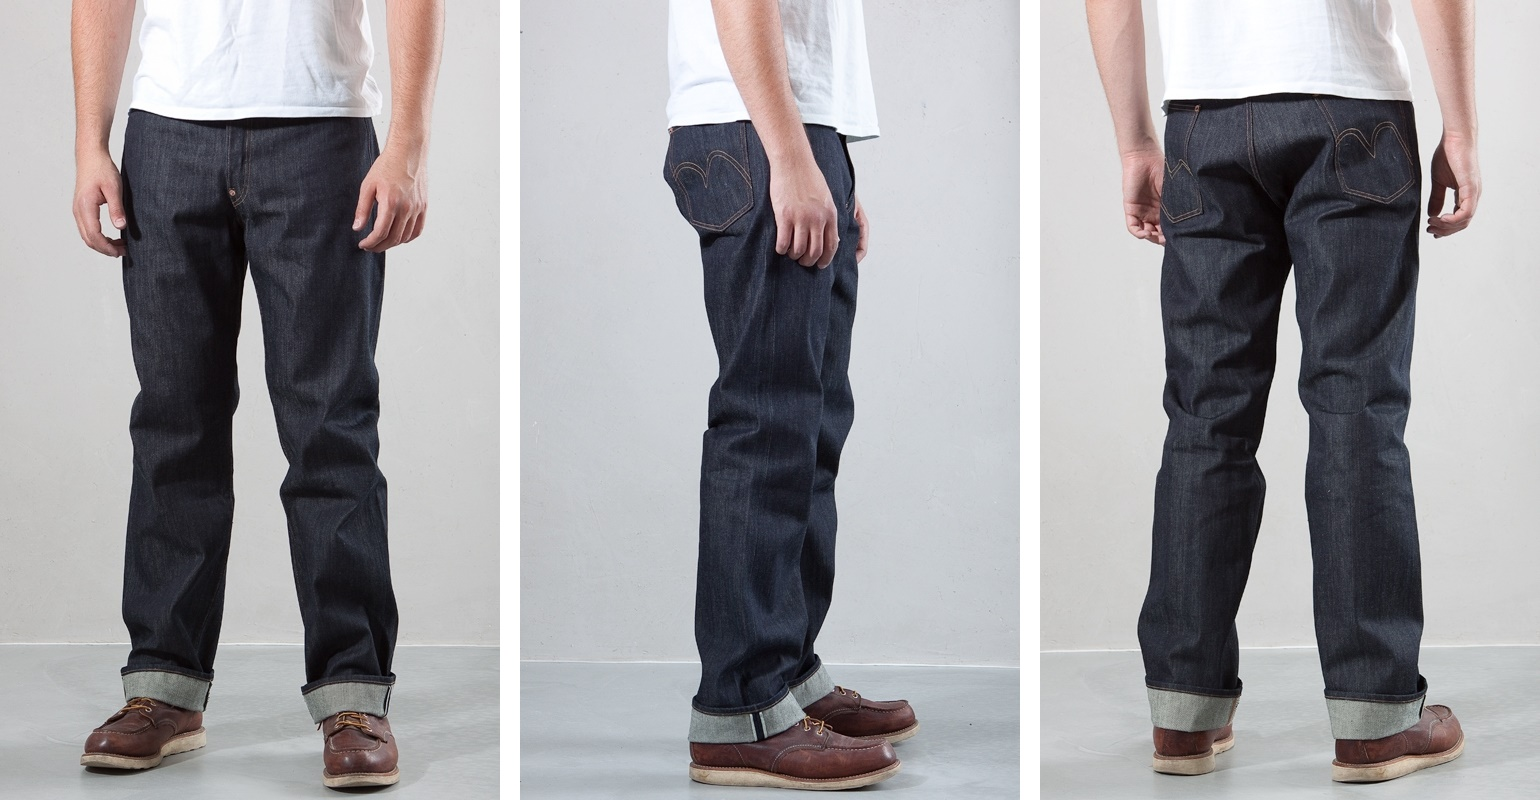 b5d8004e3d7 The story of Cone denim began 1891, when brothers Moses and Ceasar founded  Cone Export and Commission Company. By 1905 they established a mill that  would ...